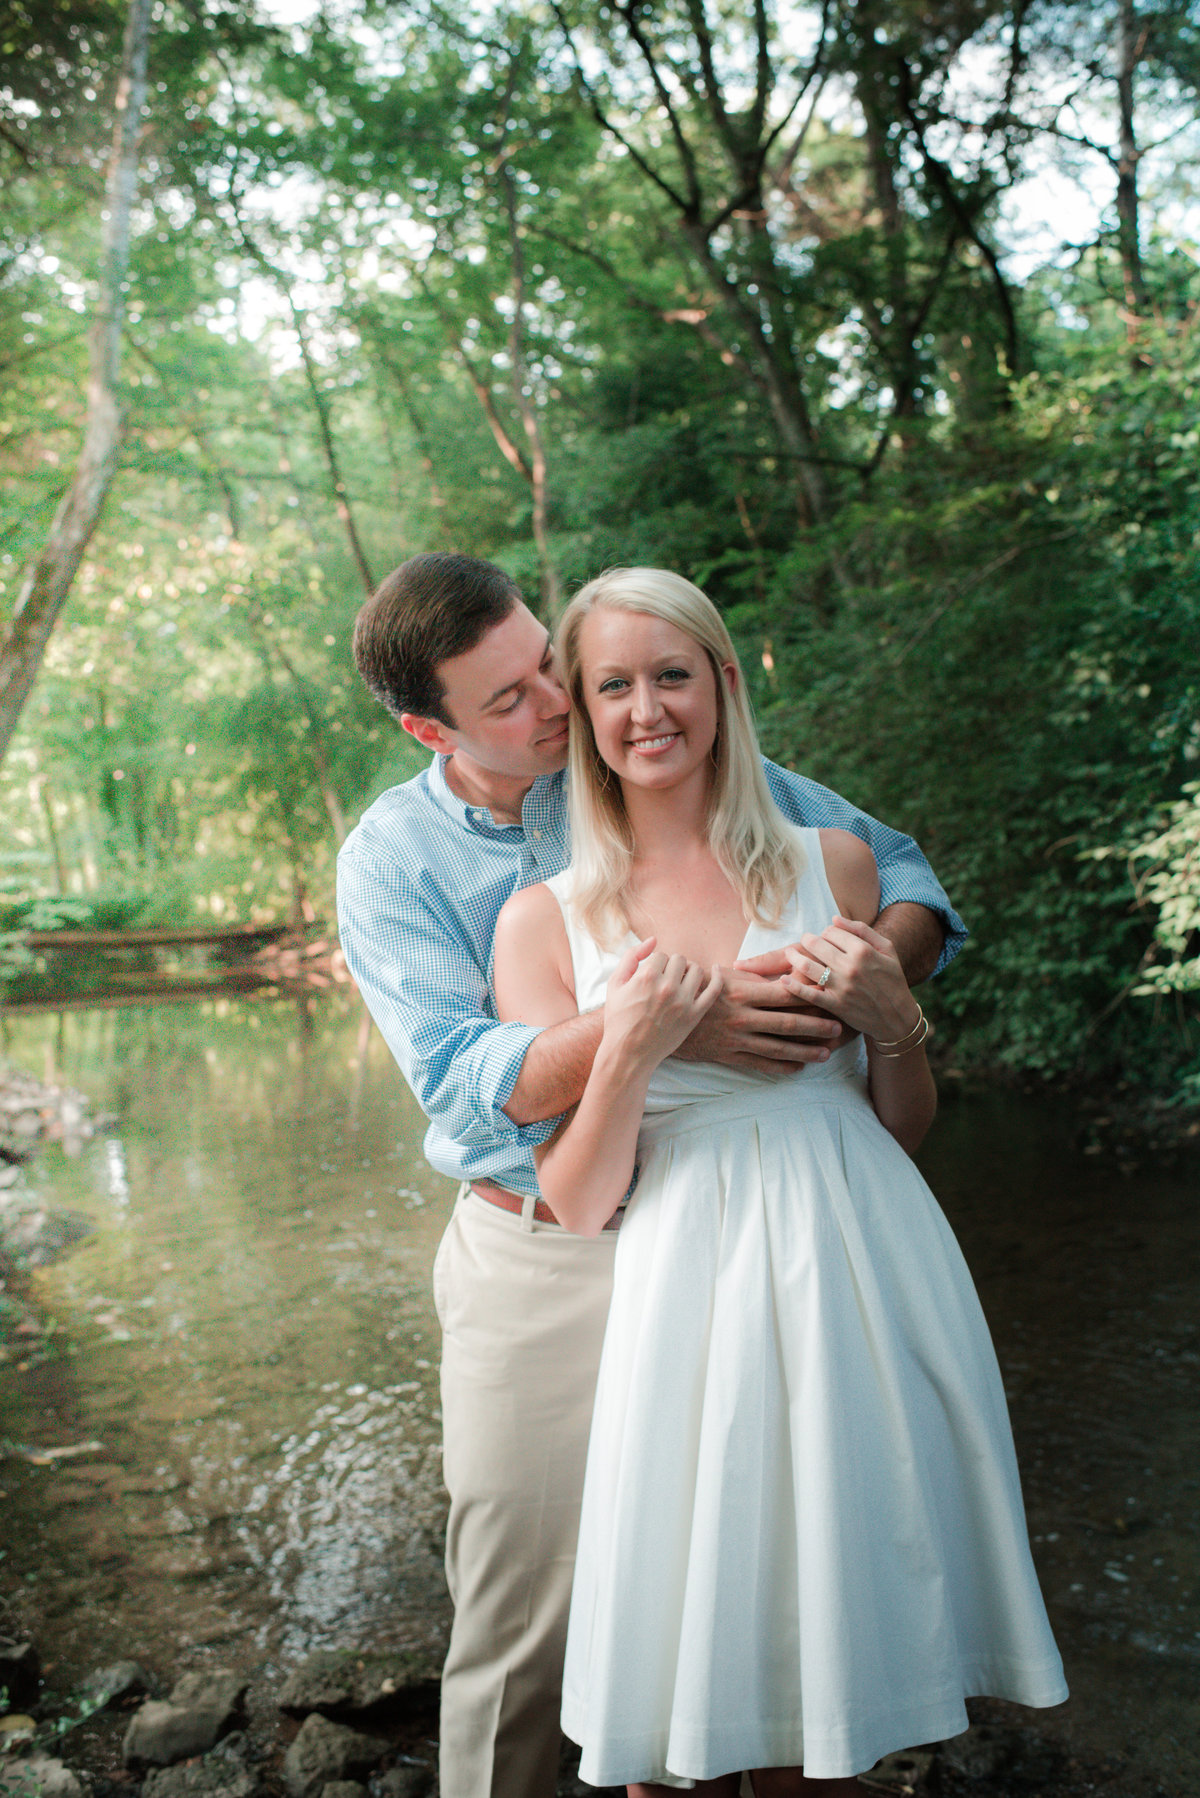 Tennessee Wedding Photographer - Mint Magnolia Photography267